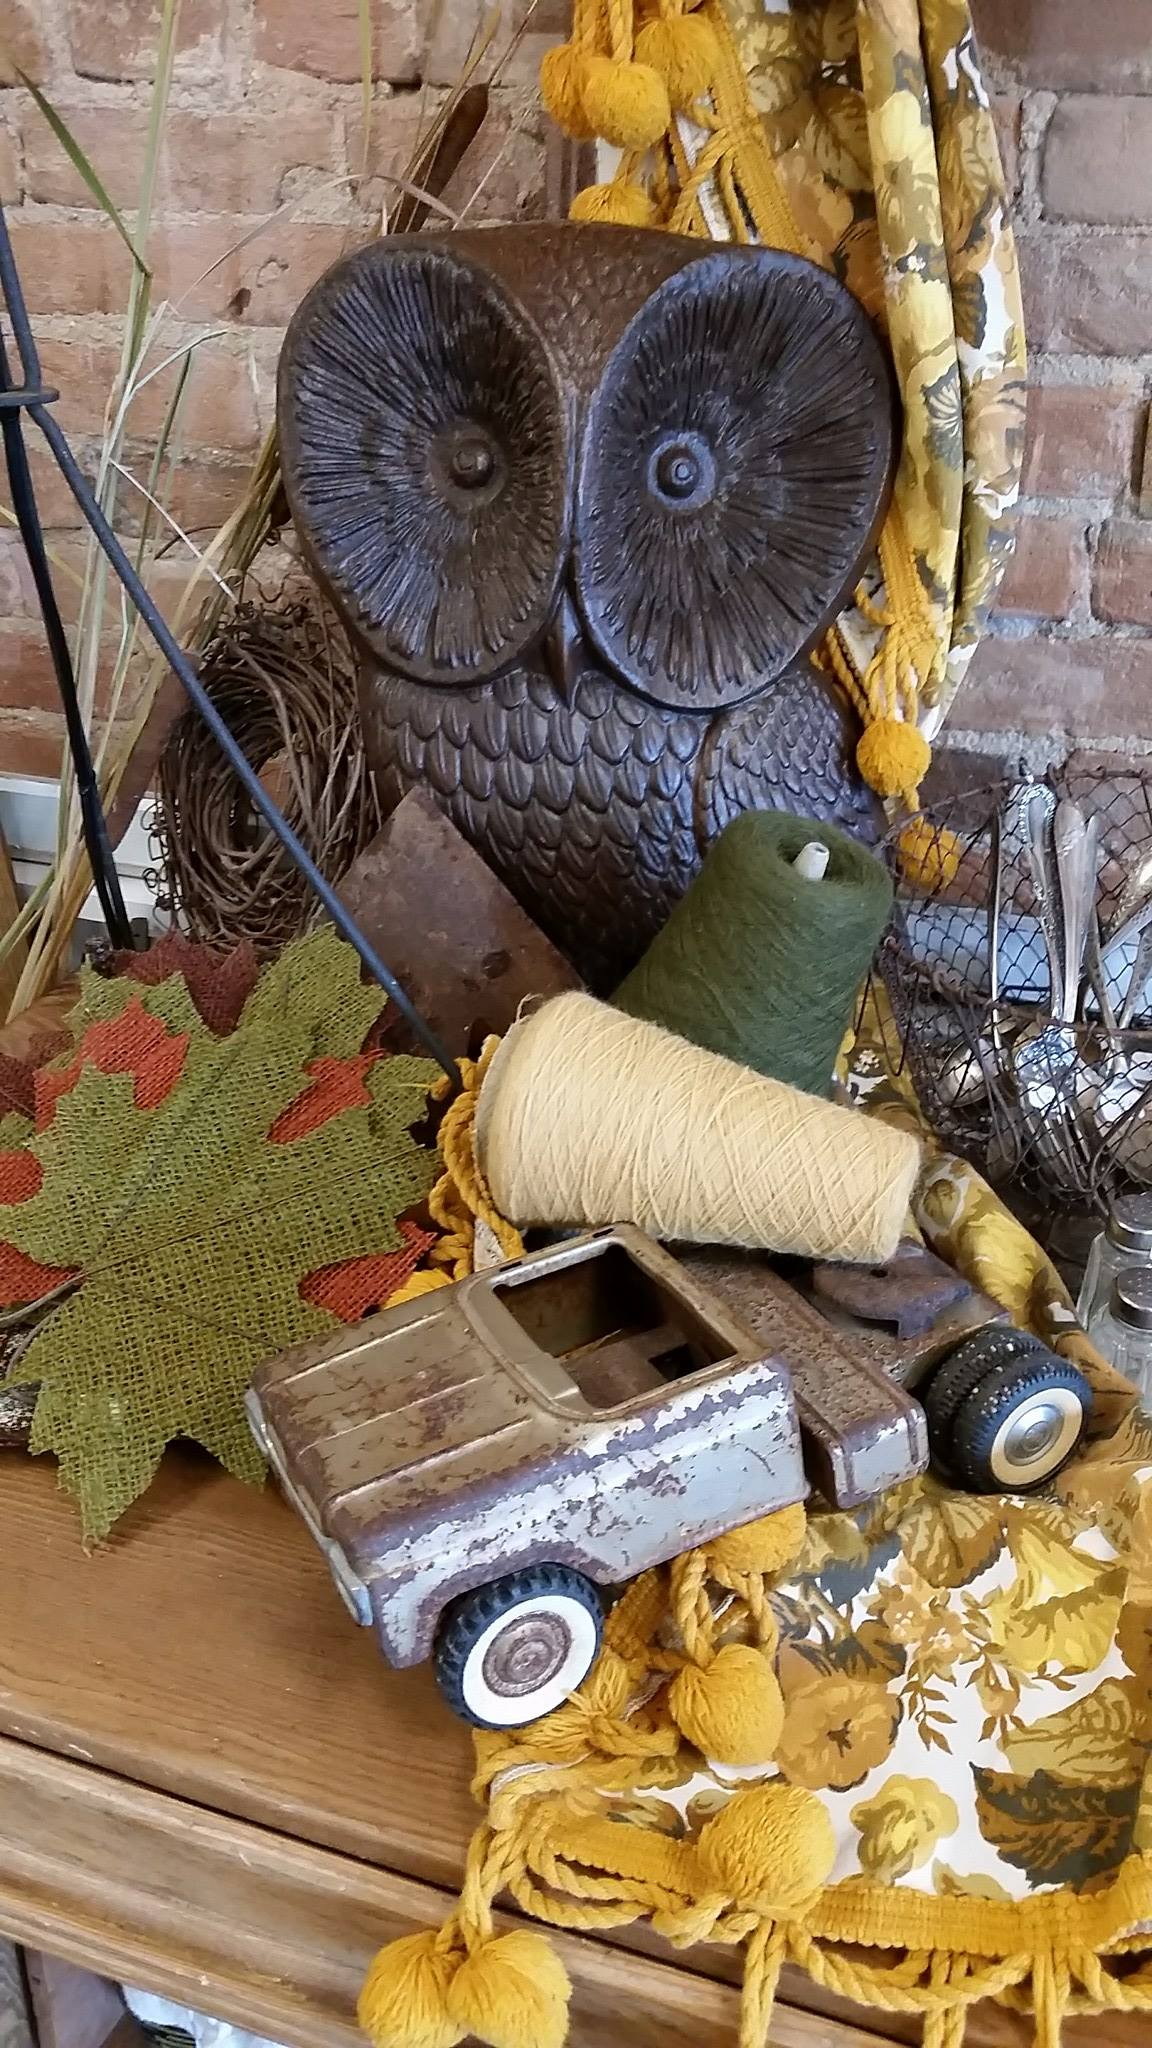 Who's anxious for Fall? Here's a little sneak peek! I'm ready to bring out all the fun stuff we have gathered.